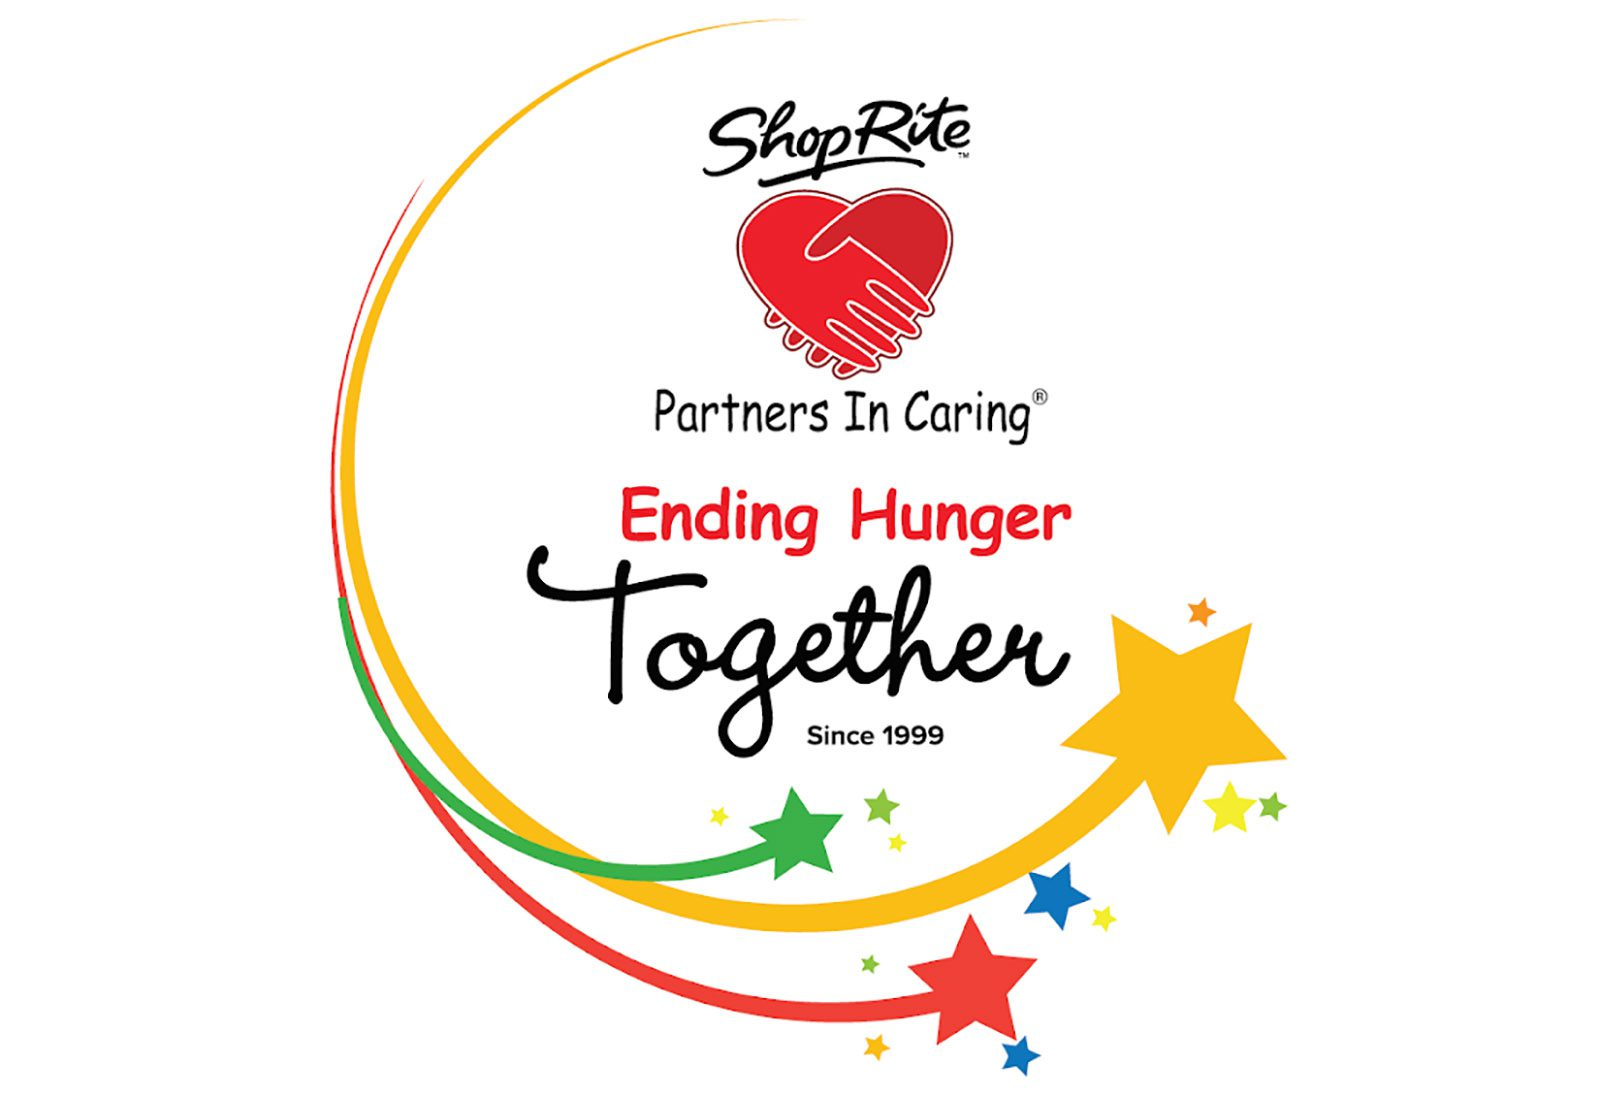 Partners In Caring 2021 was a success!